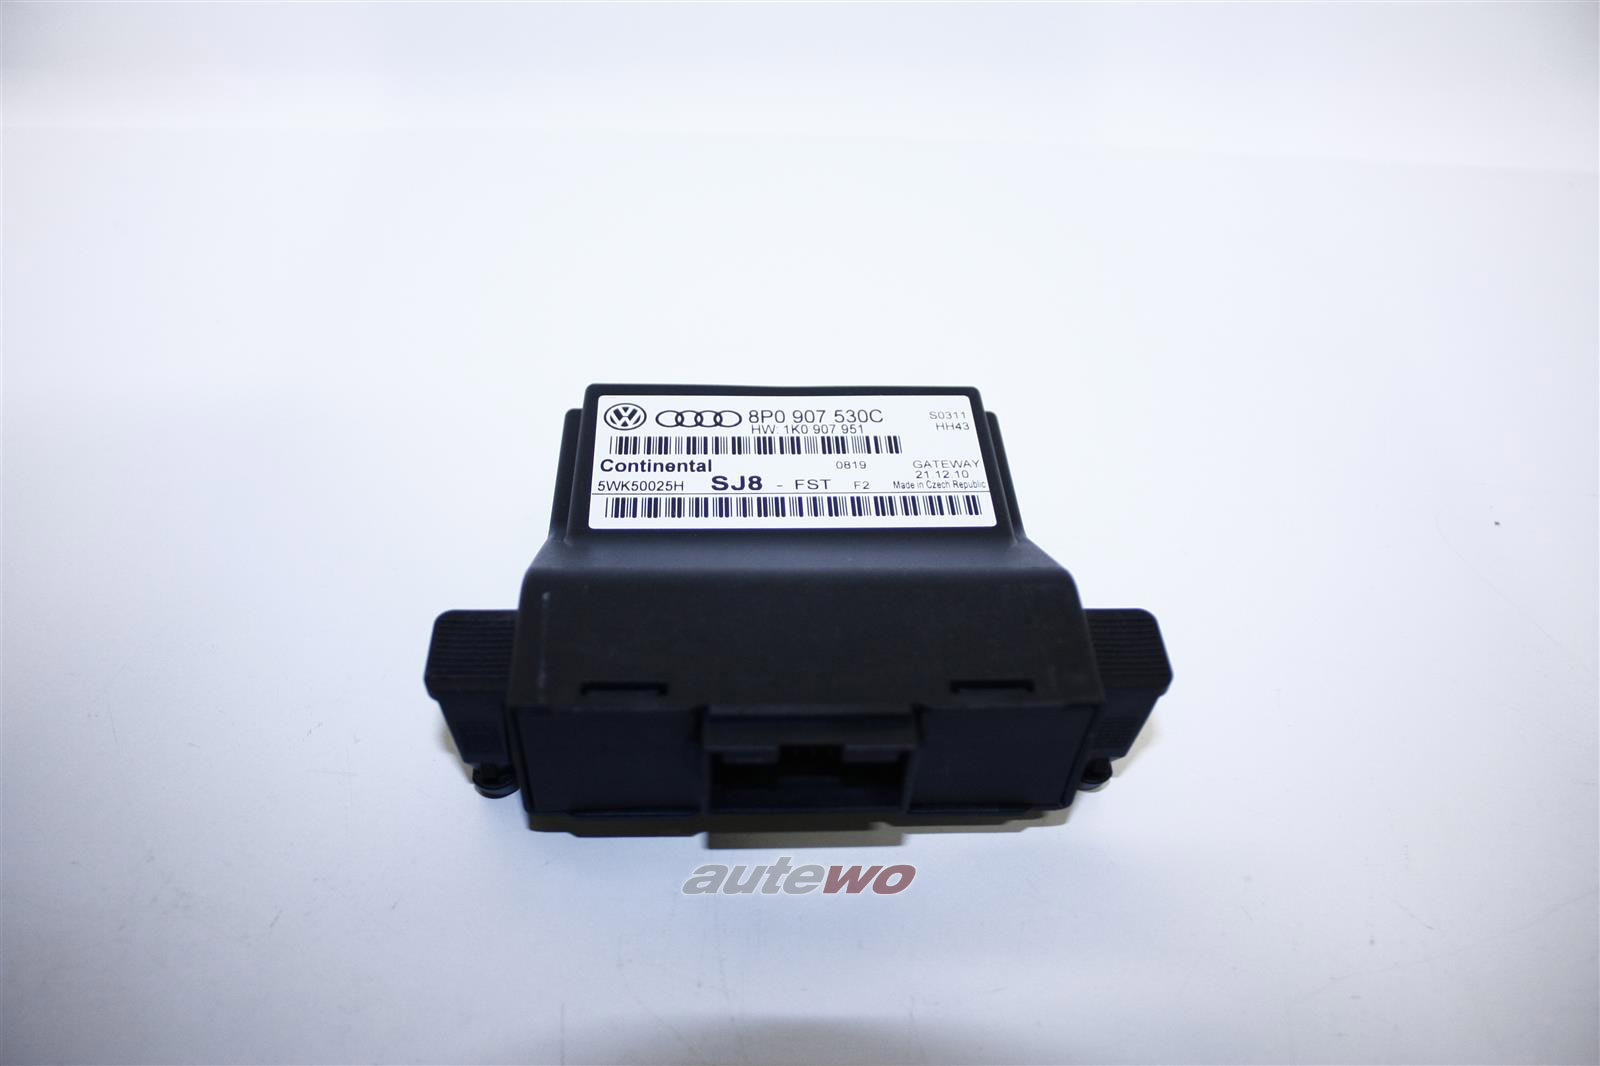 8P0907530C NEU Audi A3 8P/TT 8J/R8 Diagnose-Interface Datenbus Gateway